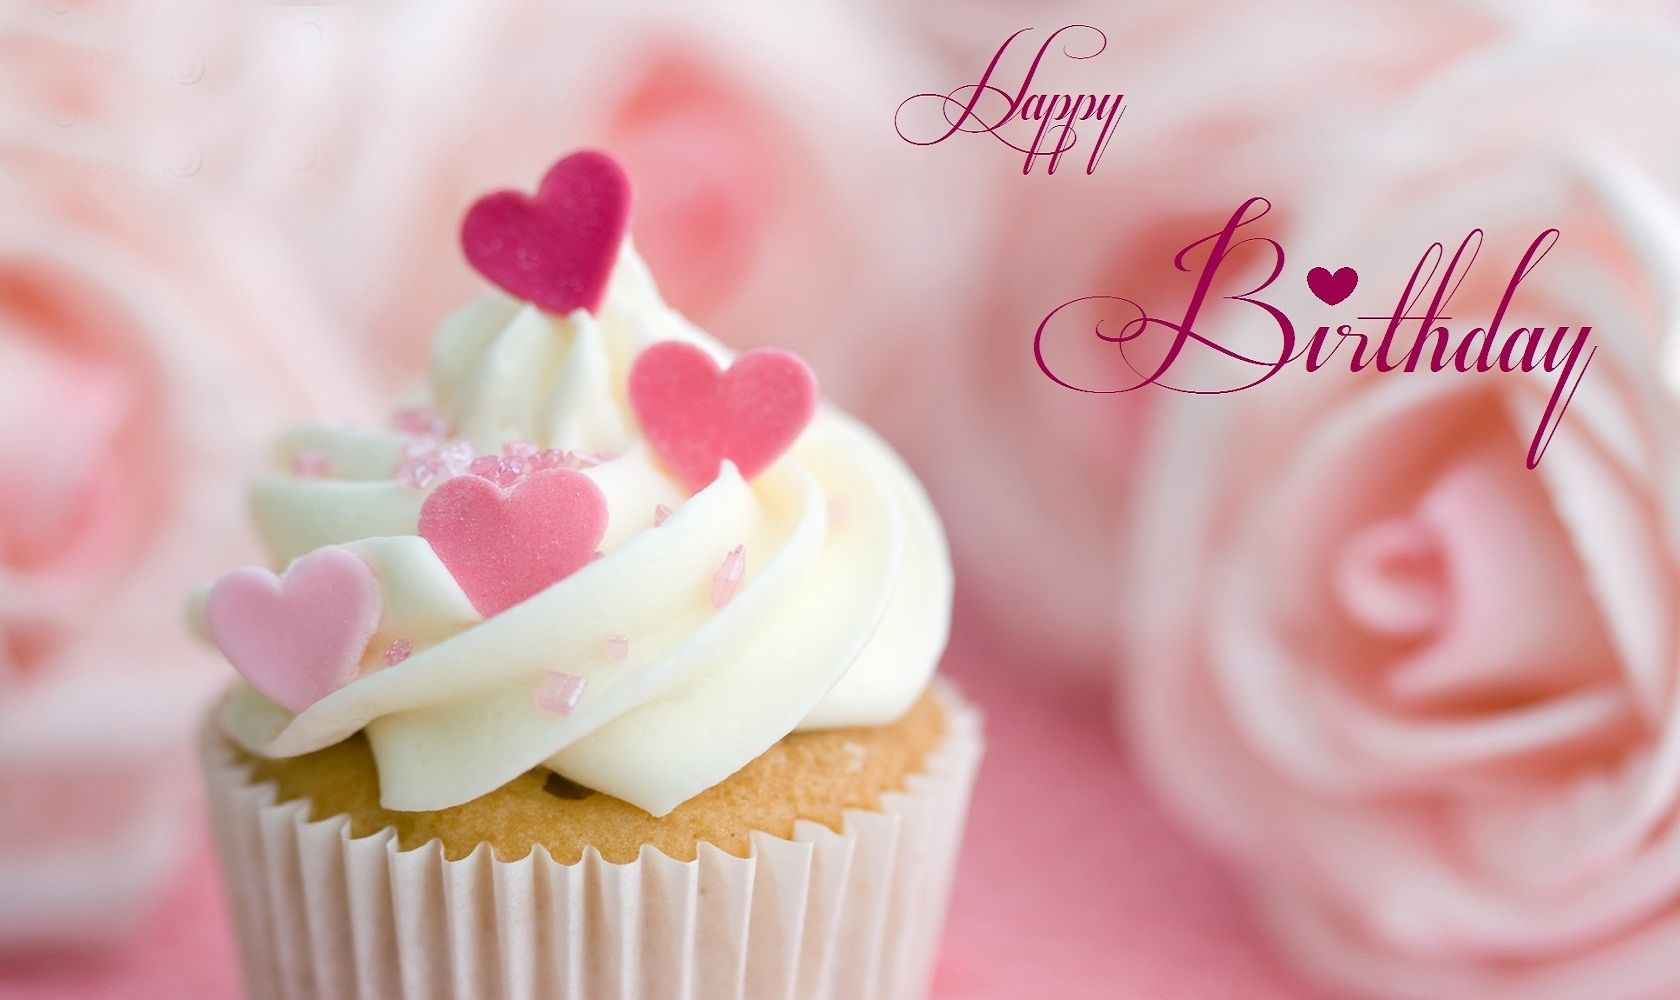 Food ultra hd 4k 5k 8k wallpapers page 1 - Wallpaper Of Love Birthday Cakes Hd Download Download Wallpaper Of Love Birthday Cakes Hd Download